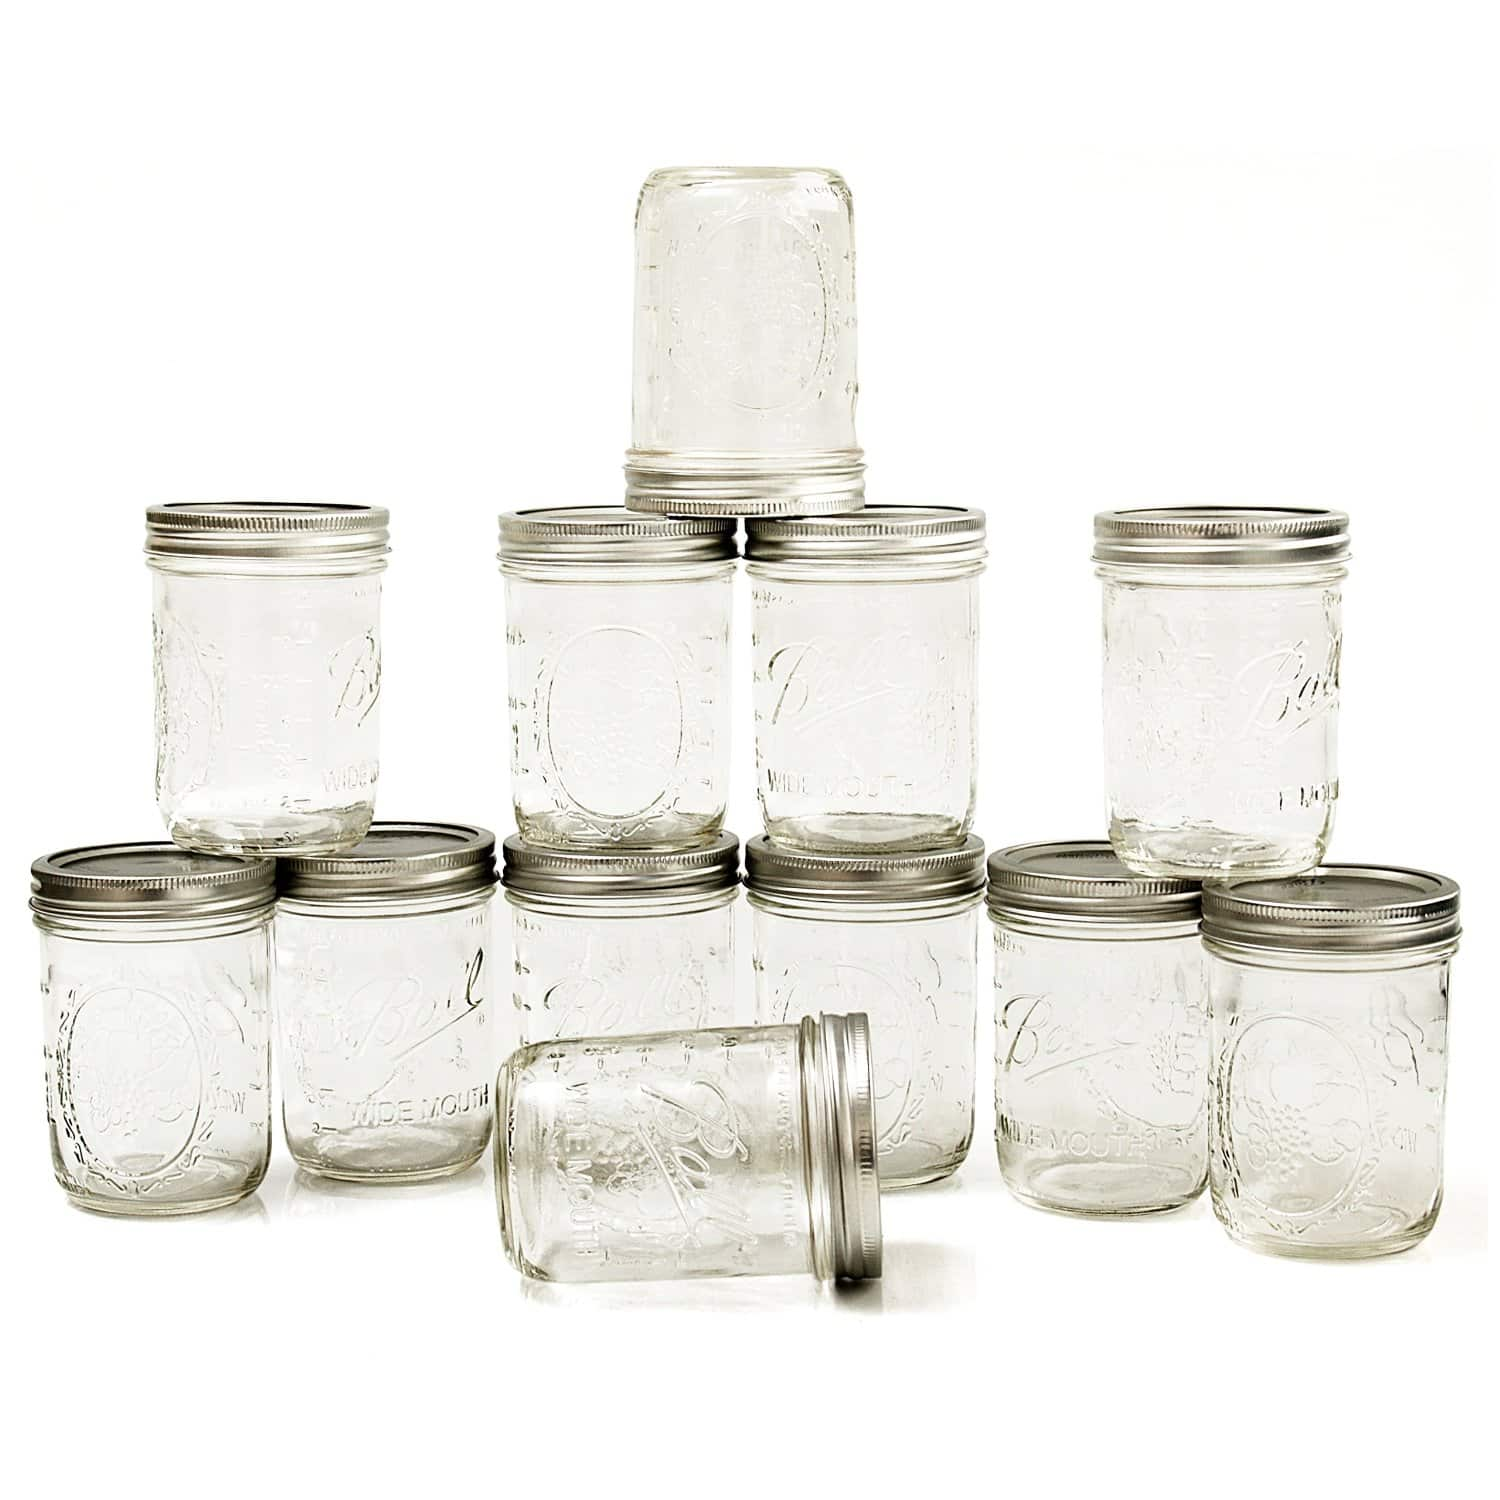 12-Pack of 16oz Ball Mason Wide-Mouth Jars  $8.50 + Free Store Pickup